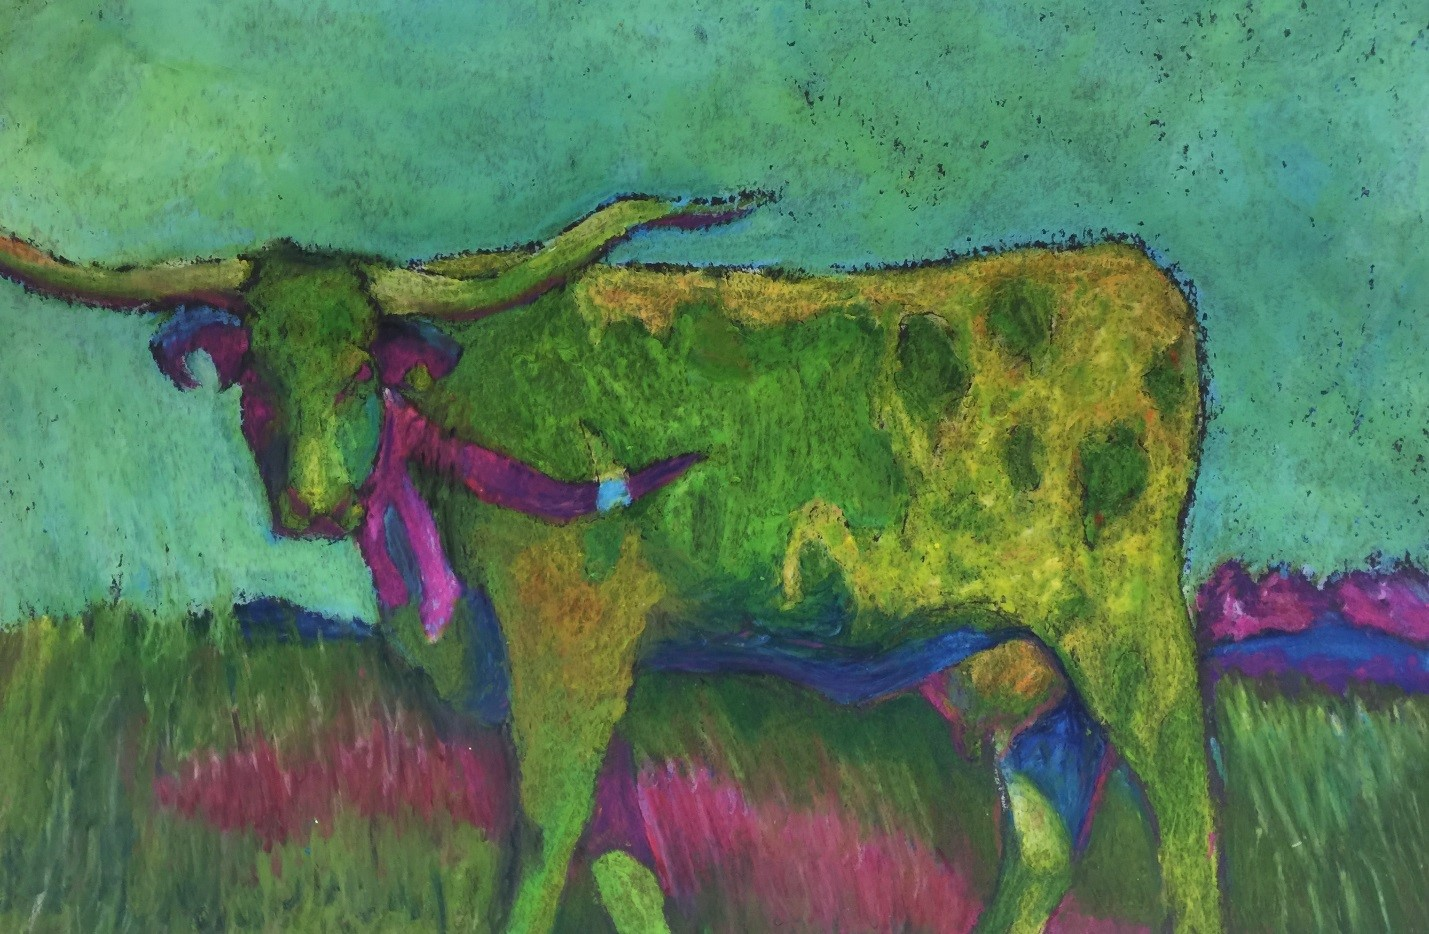 Houston Livestock Show & Rodeo Art Contest Winners - Grades 8-12